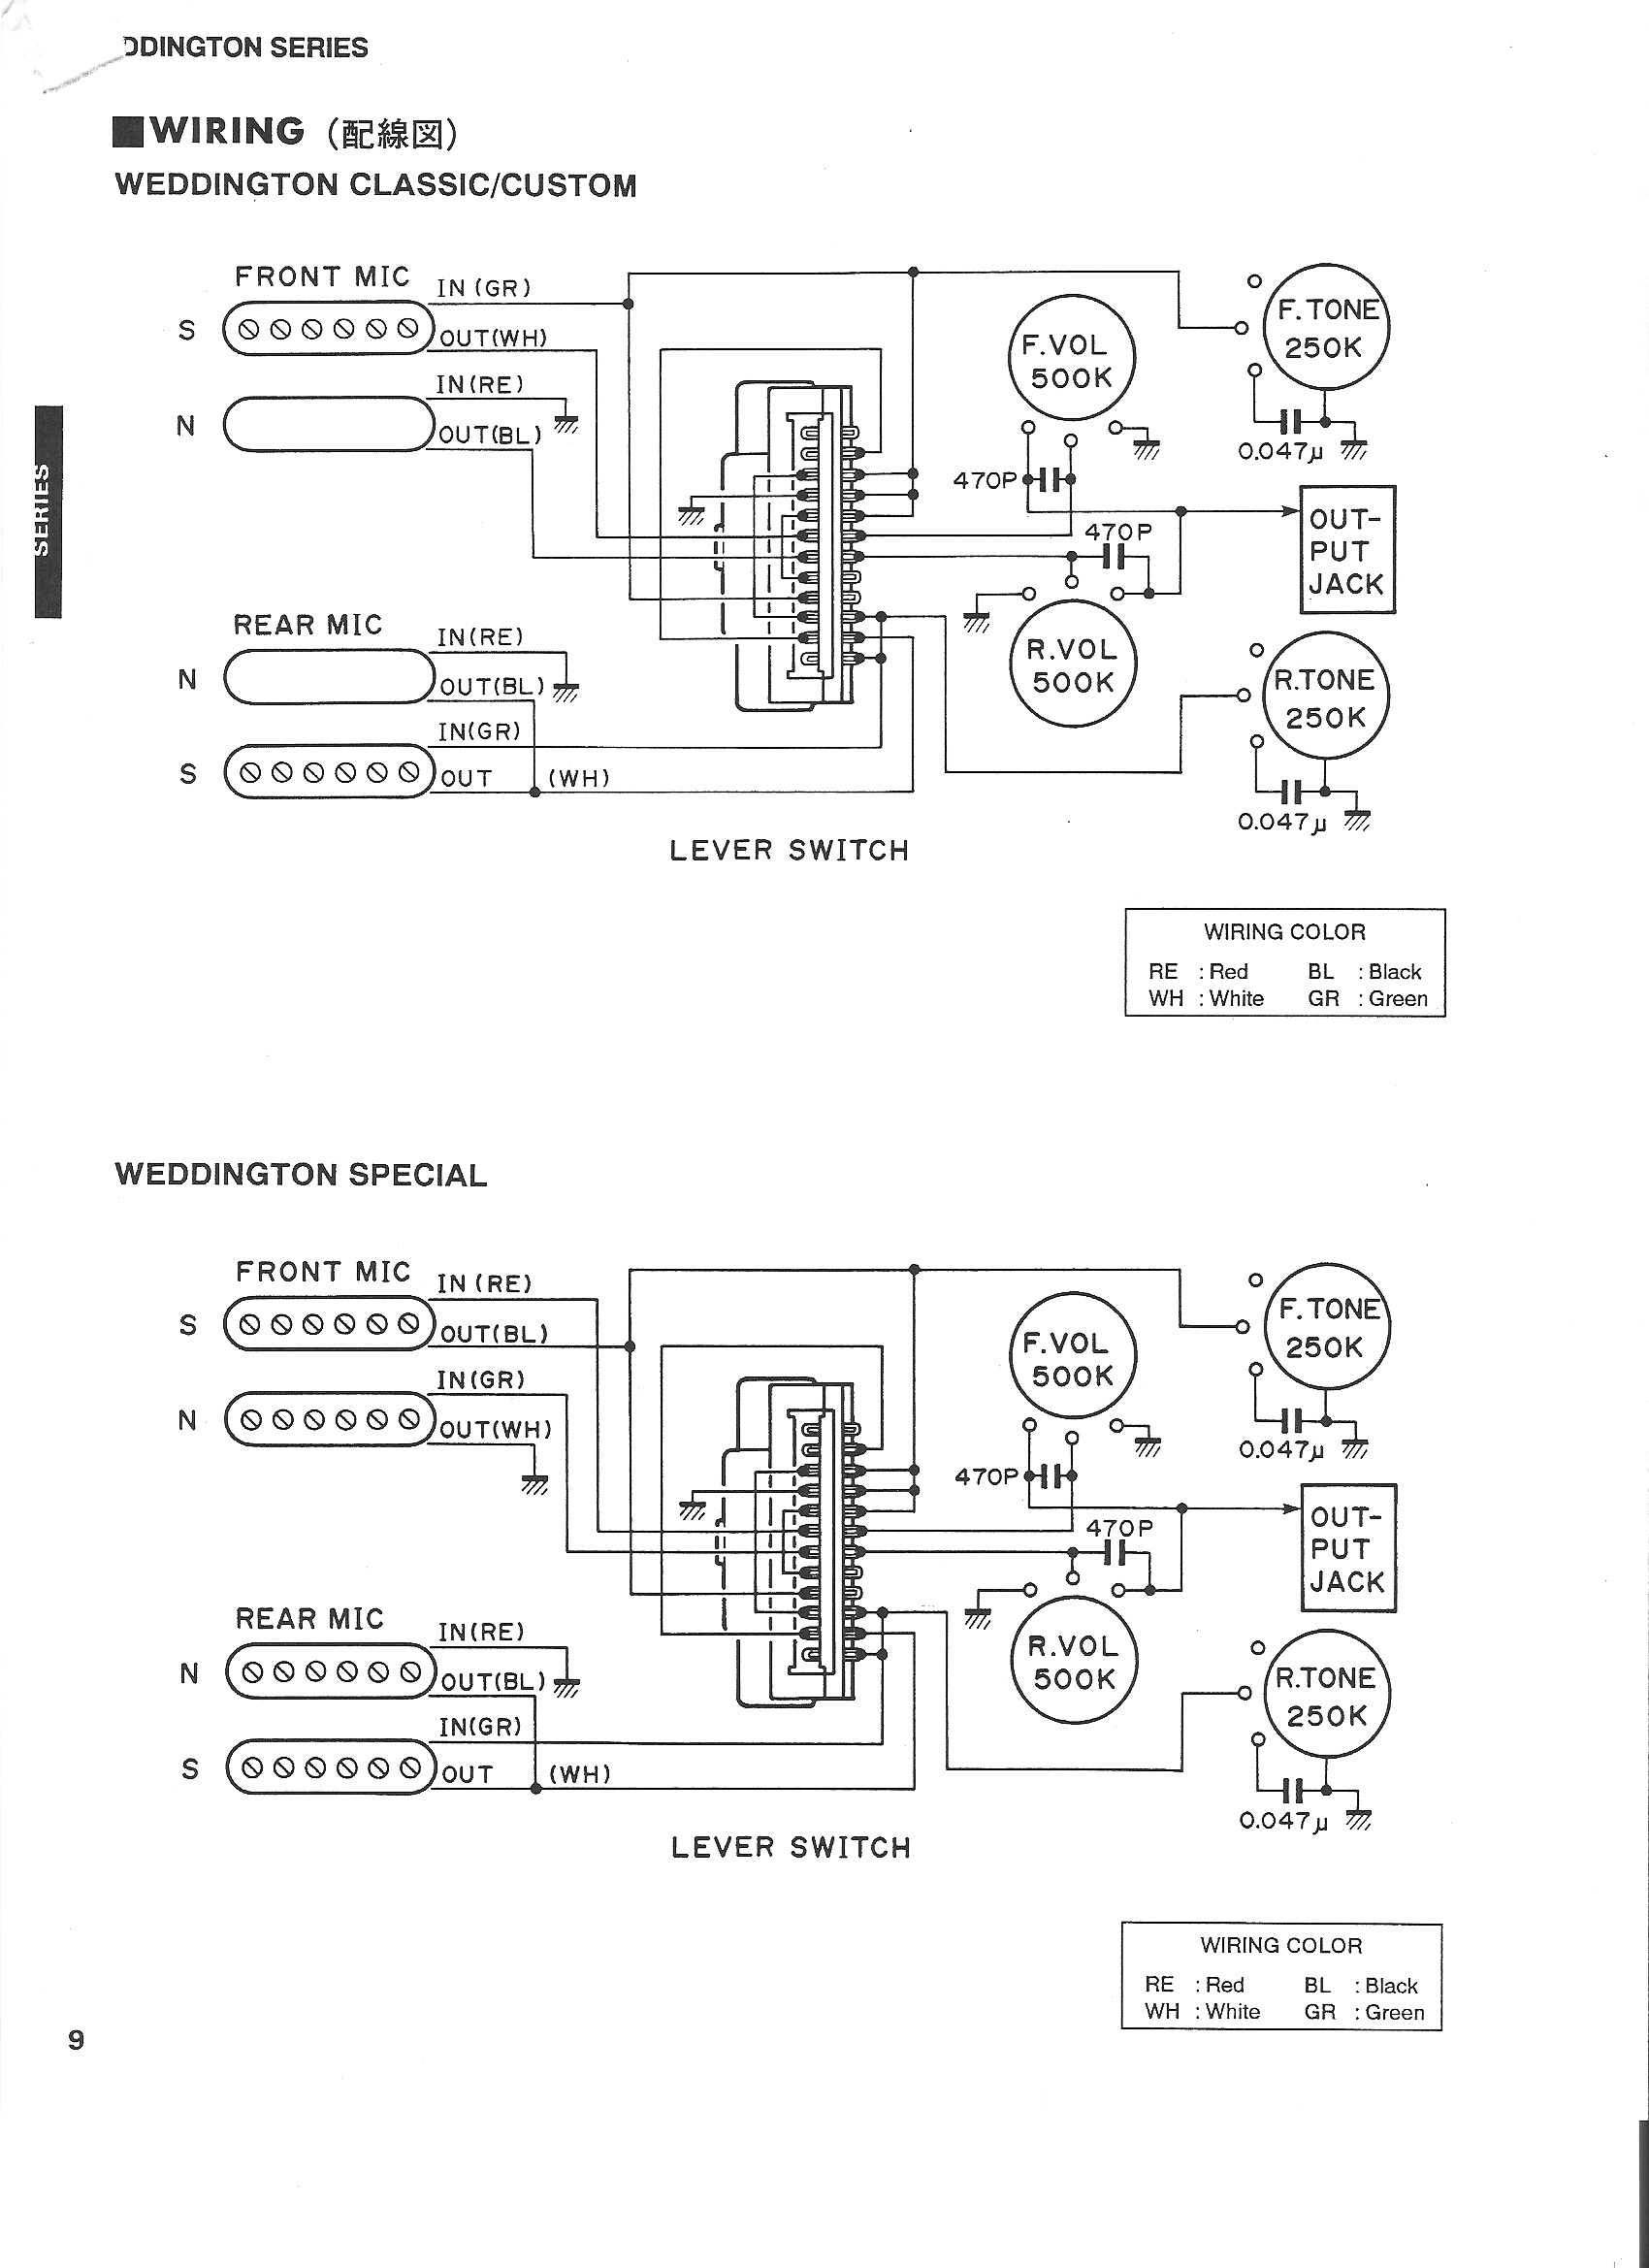 Yamaha Weddington Classic_Custom wiring diagram?resized665%2C915 yamaha pacifica 112 wiring diagram efcaviation com yamaha pacifica 112 wiring diagram at mifinder.co